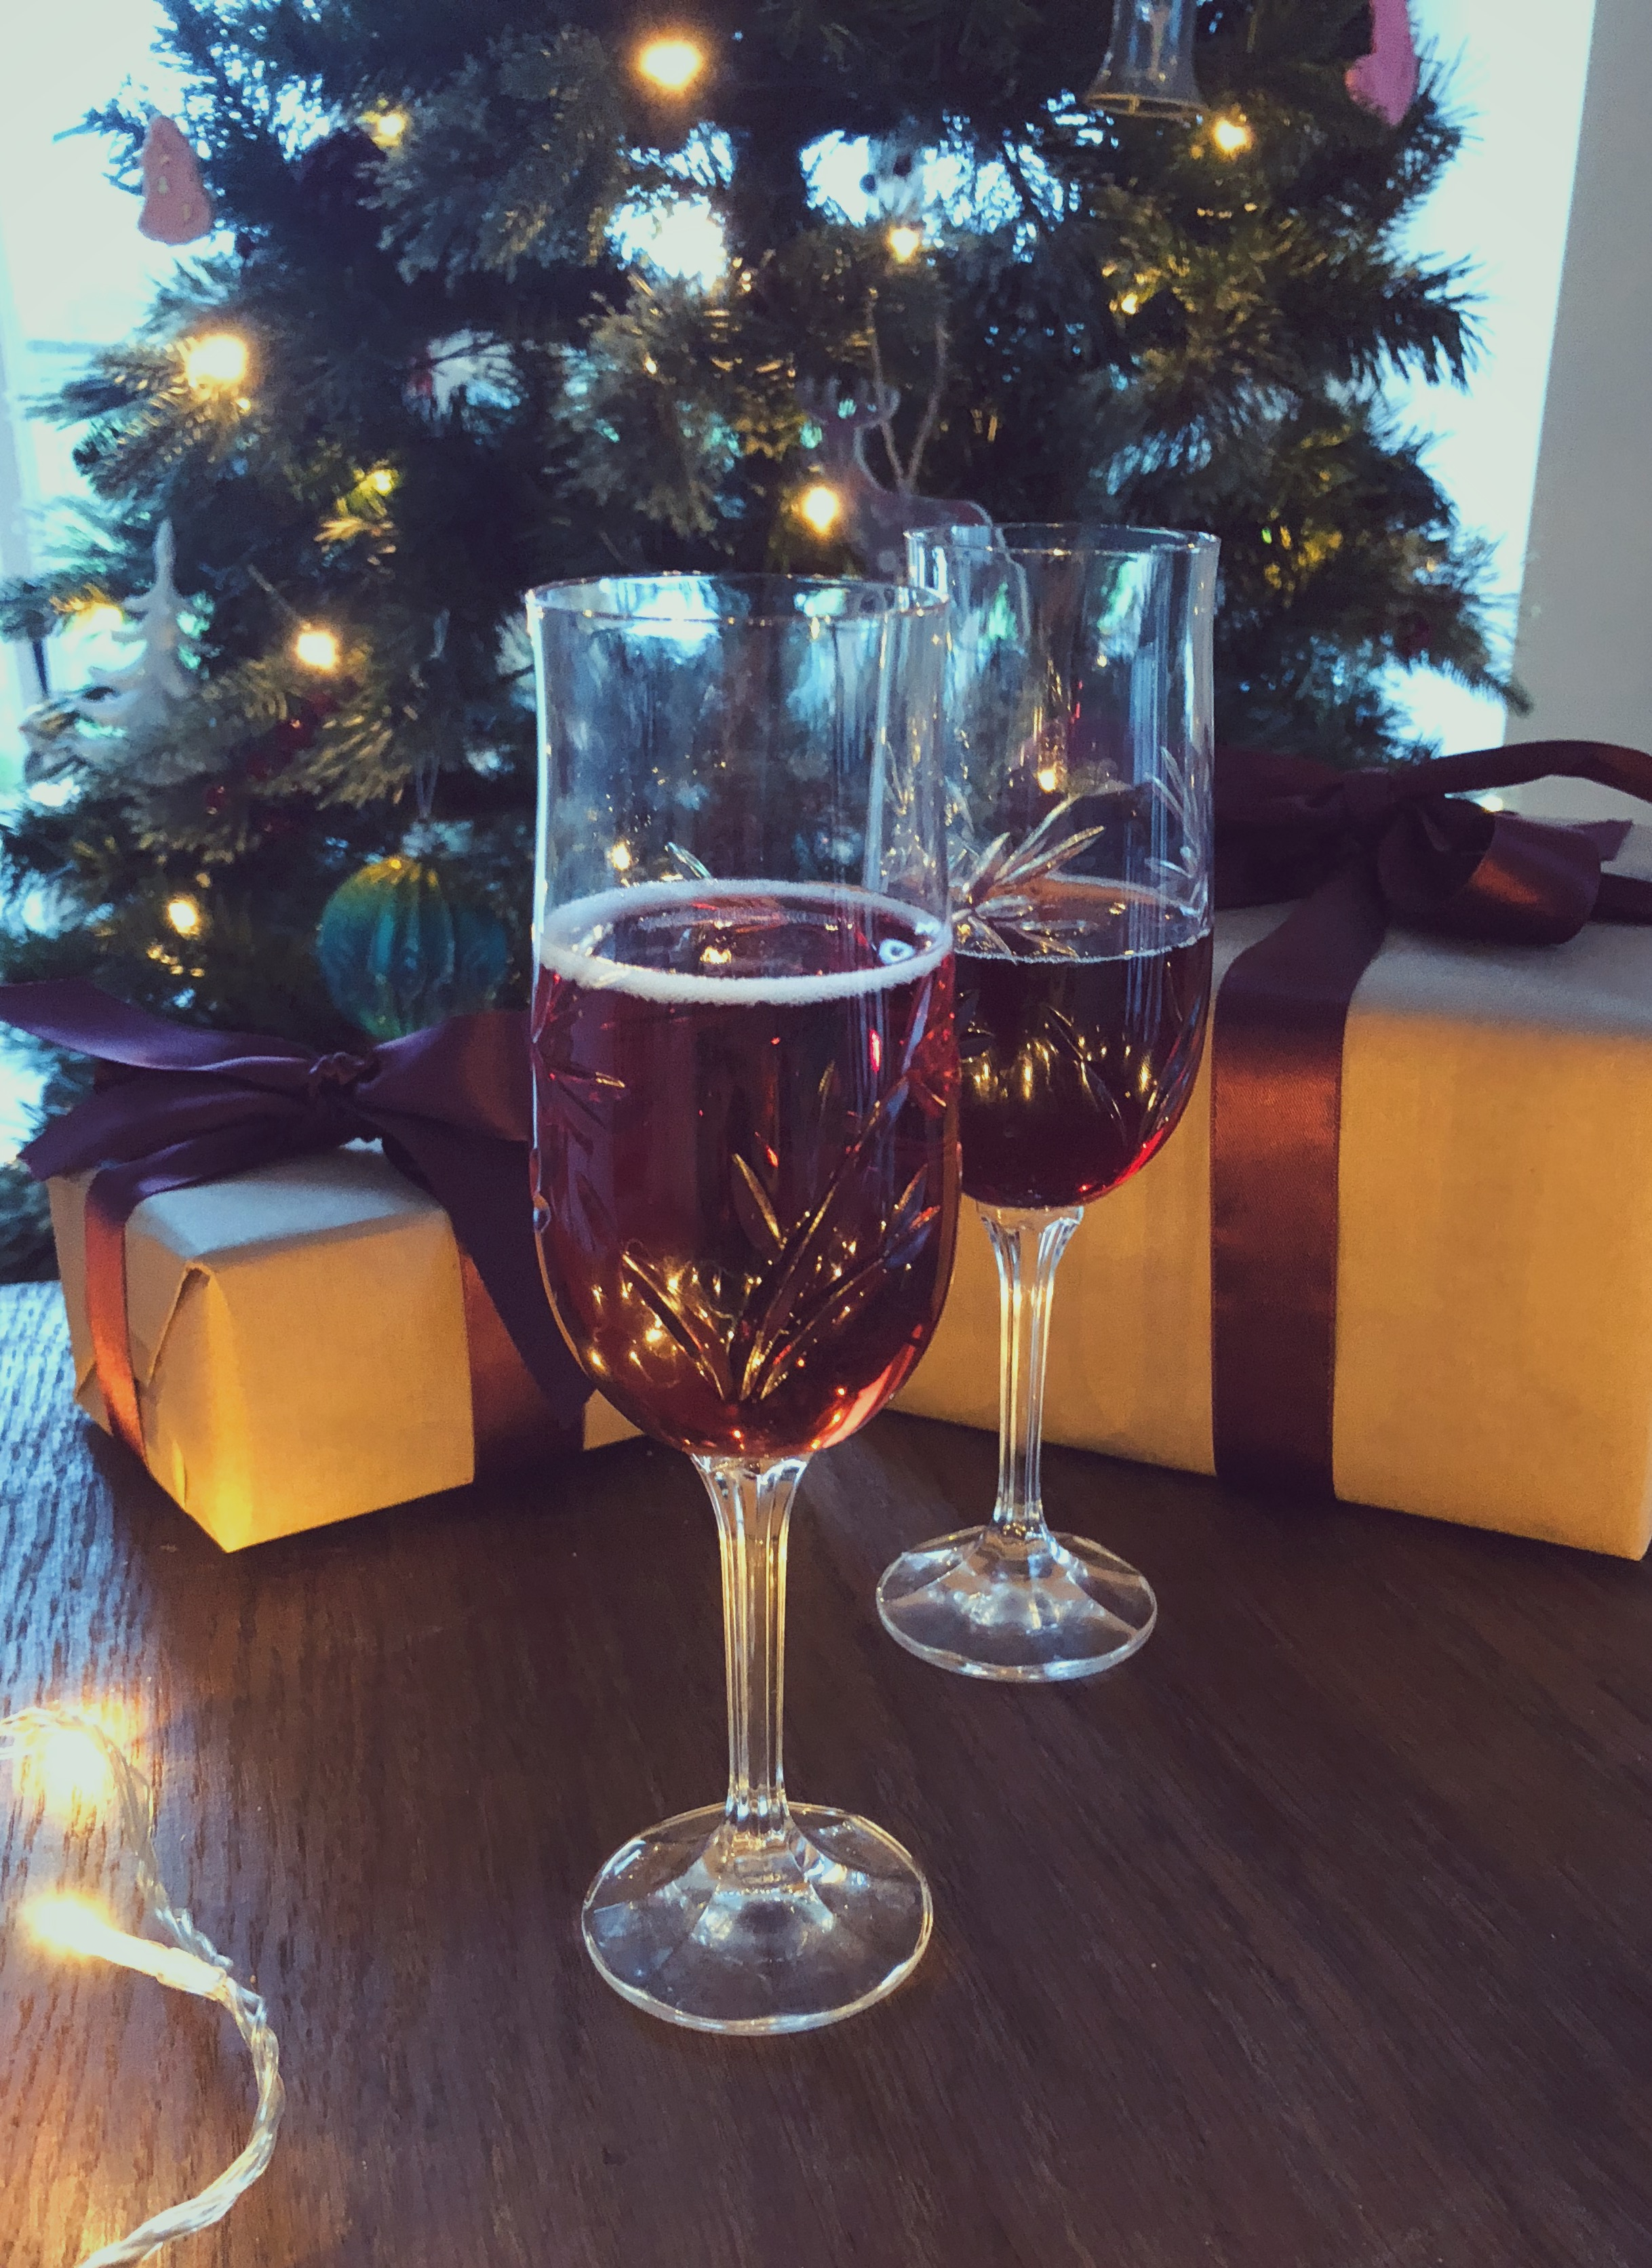 Godminster Kir Royale